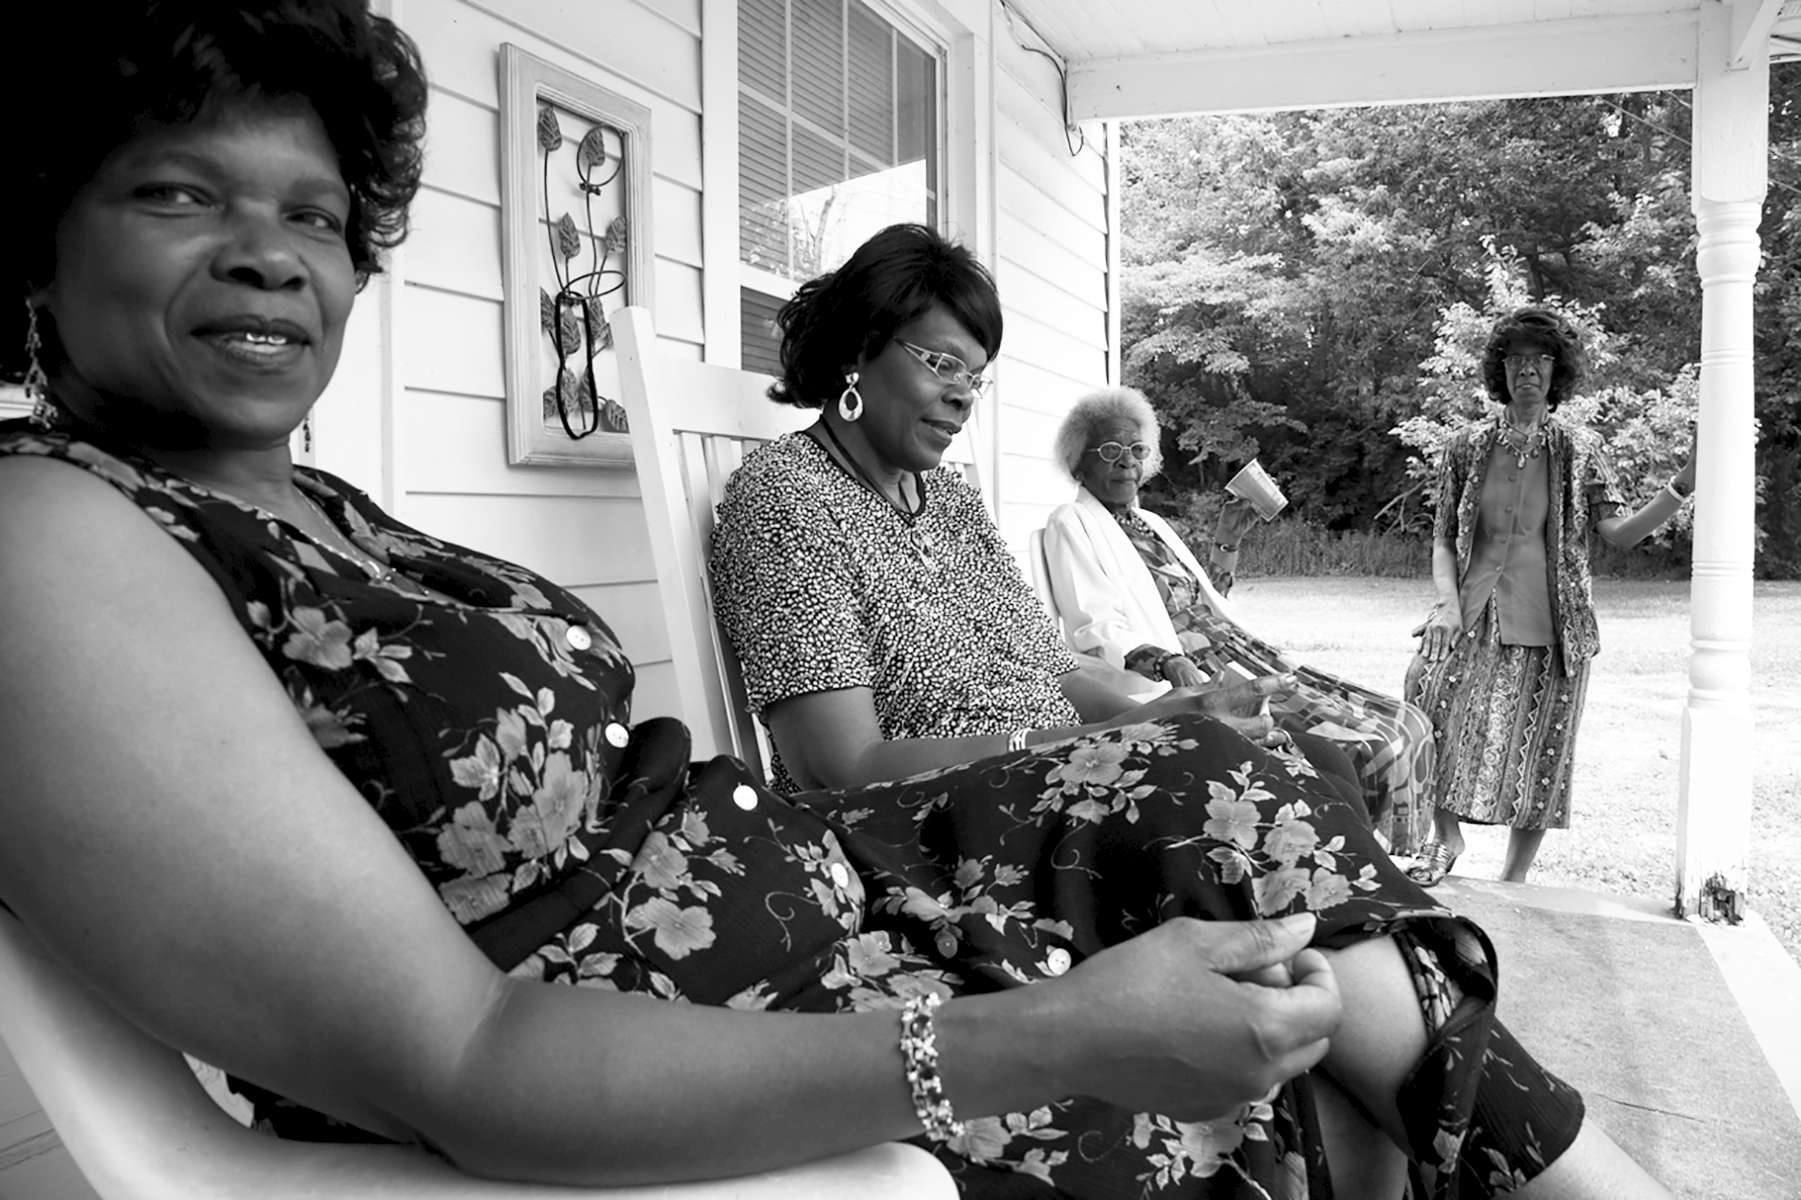 Sarah_Hoskins_The_Homeplace__KY_blackhamlets__africanamerican_